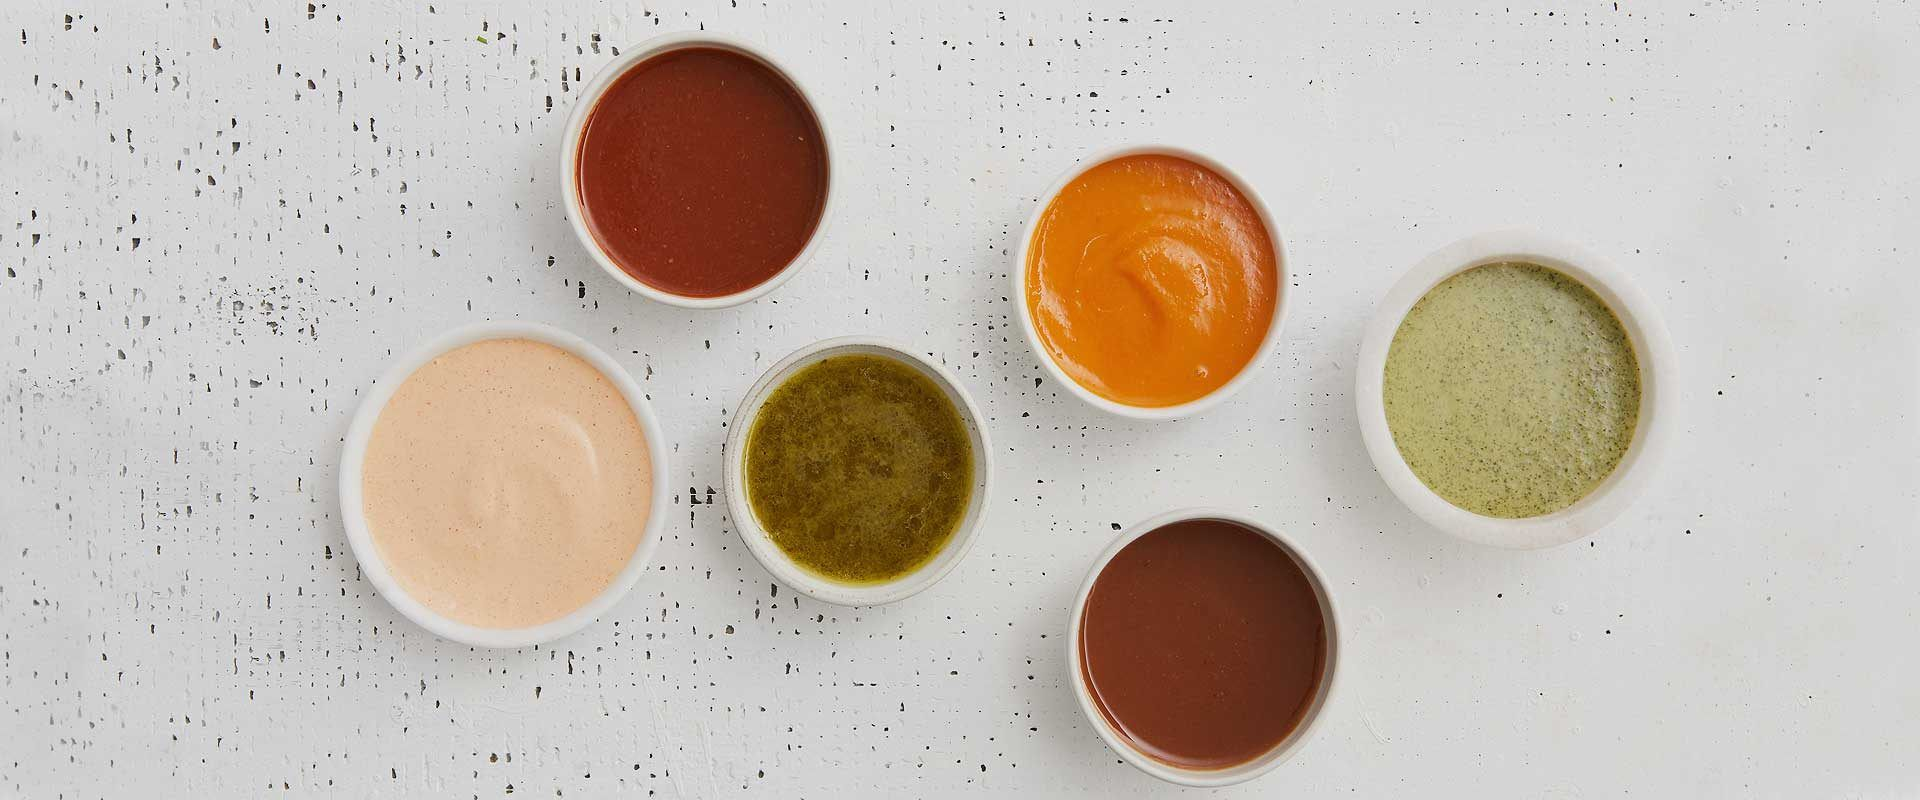 sauces and chutneys on a table